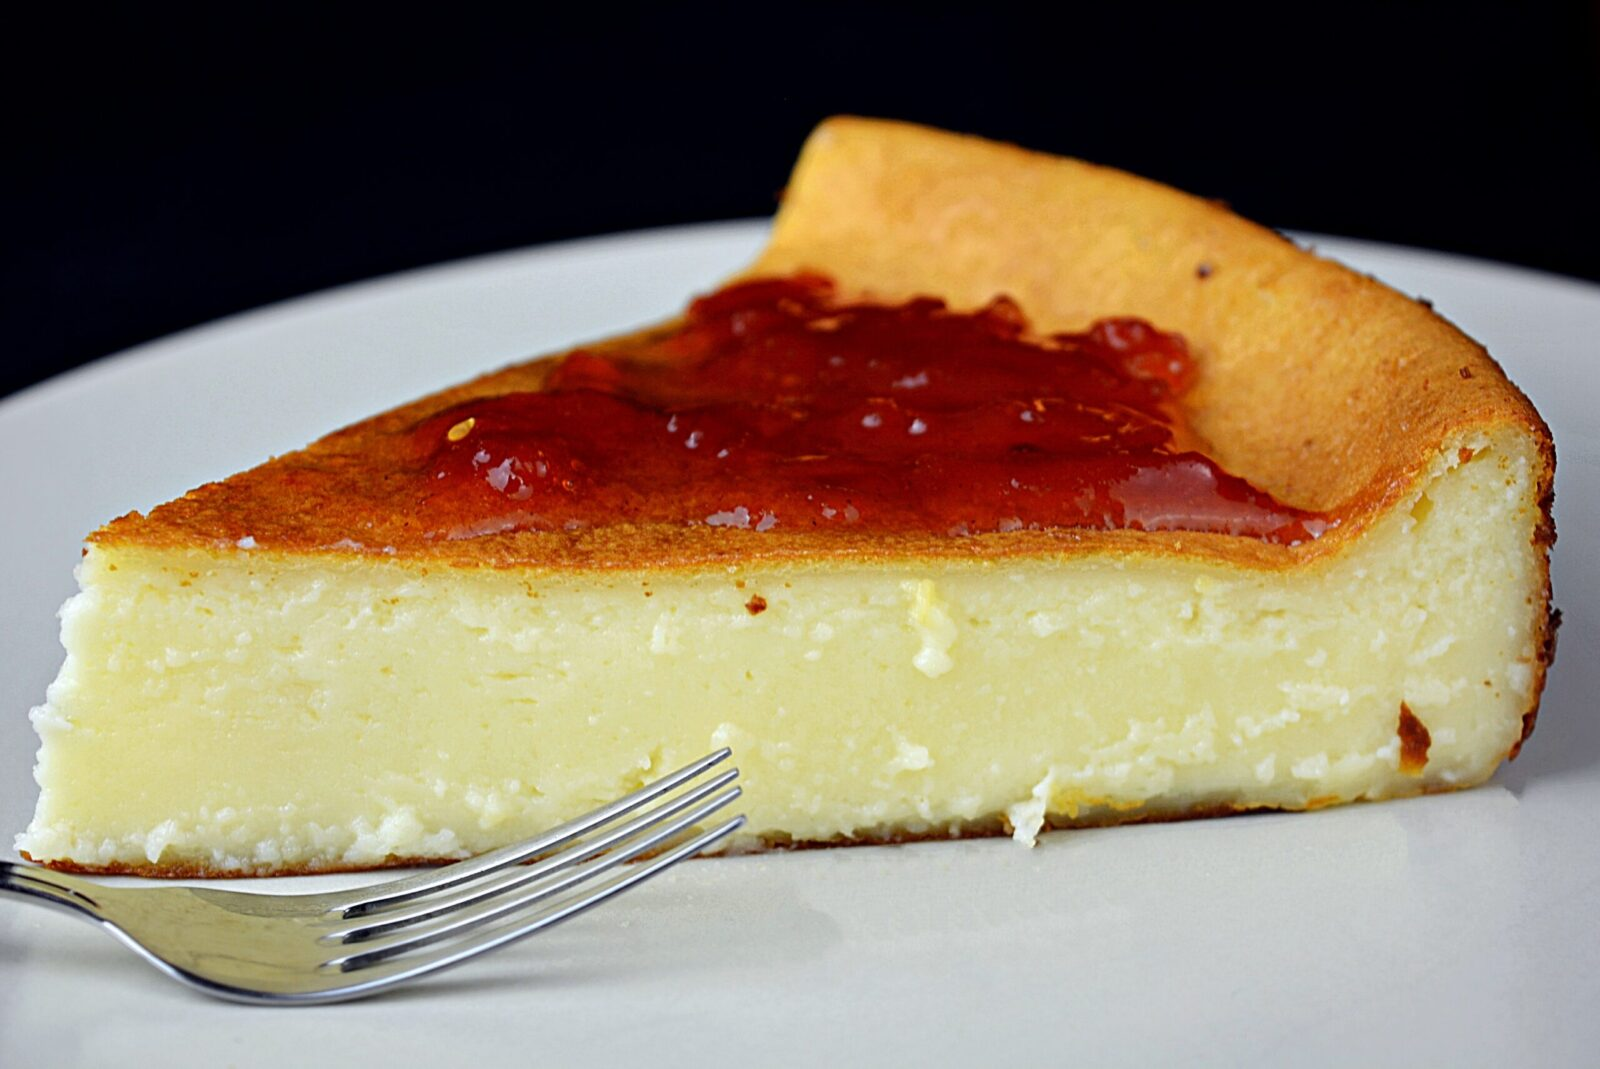 Homemade cheesecake, the easiest in the world